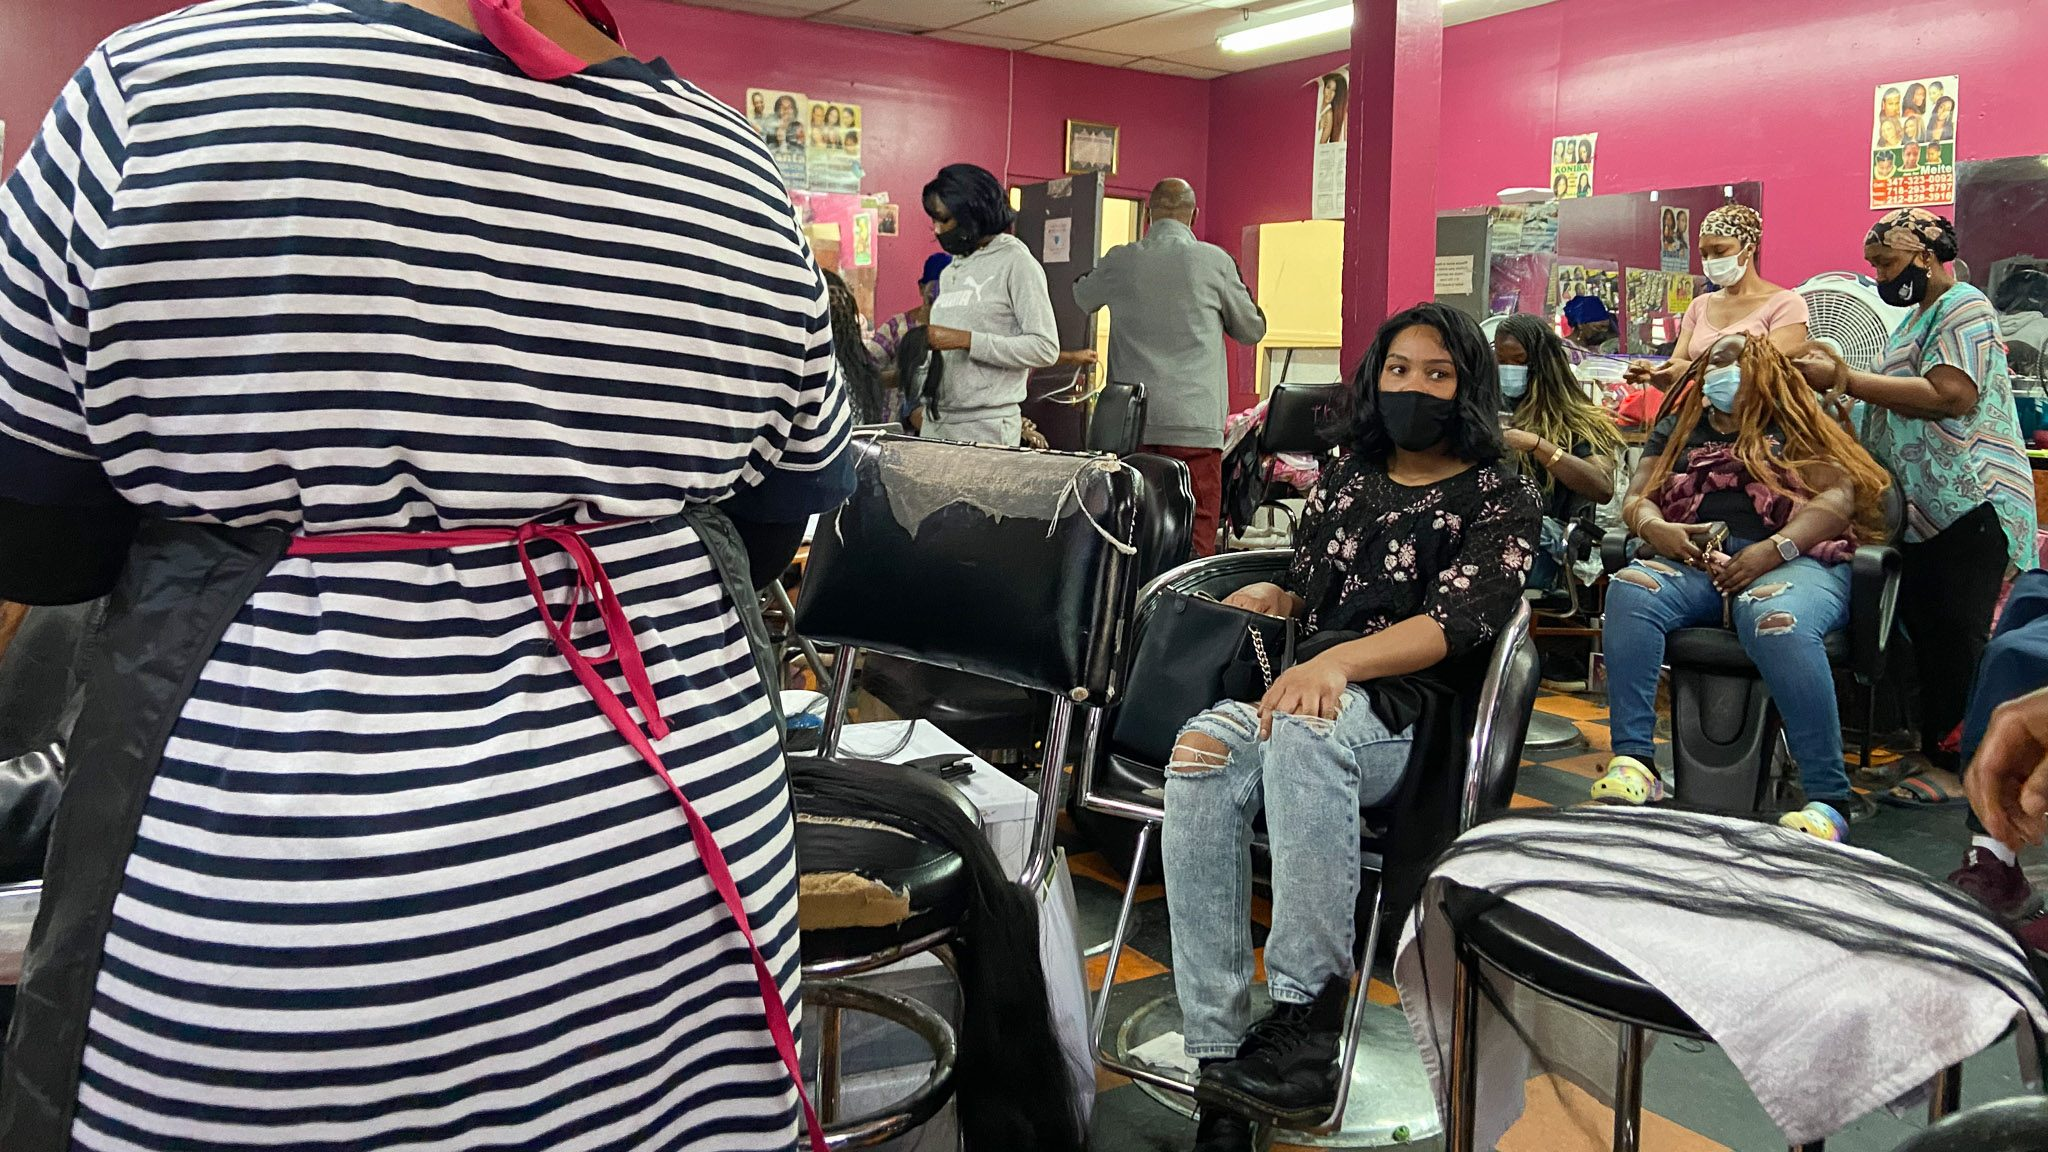 The hair braiding profession has found it especially difficult to recover from the pandemic. This industry is a lifeline that is turning into a dead-end